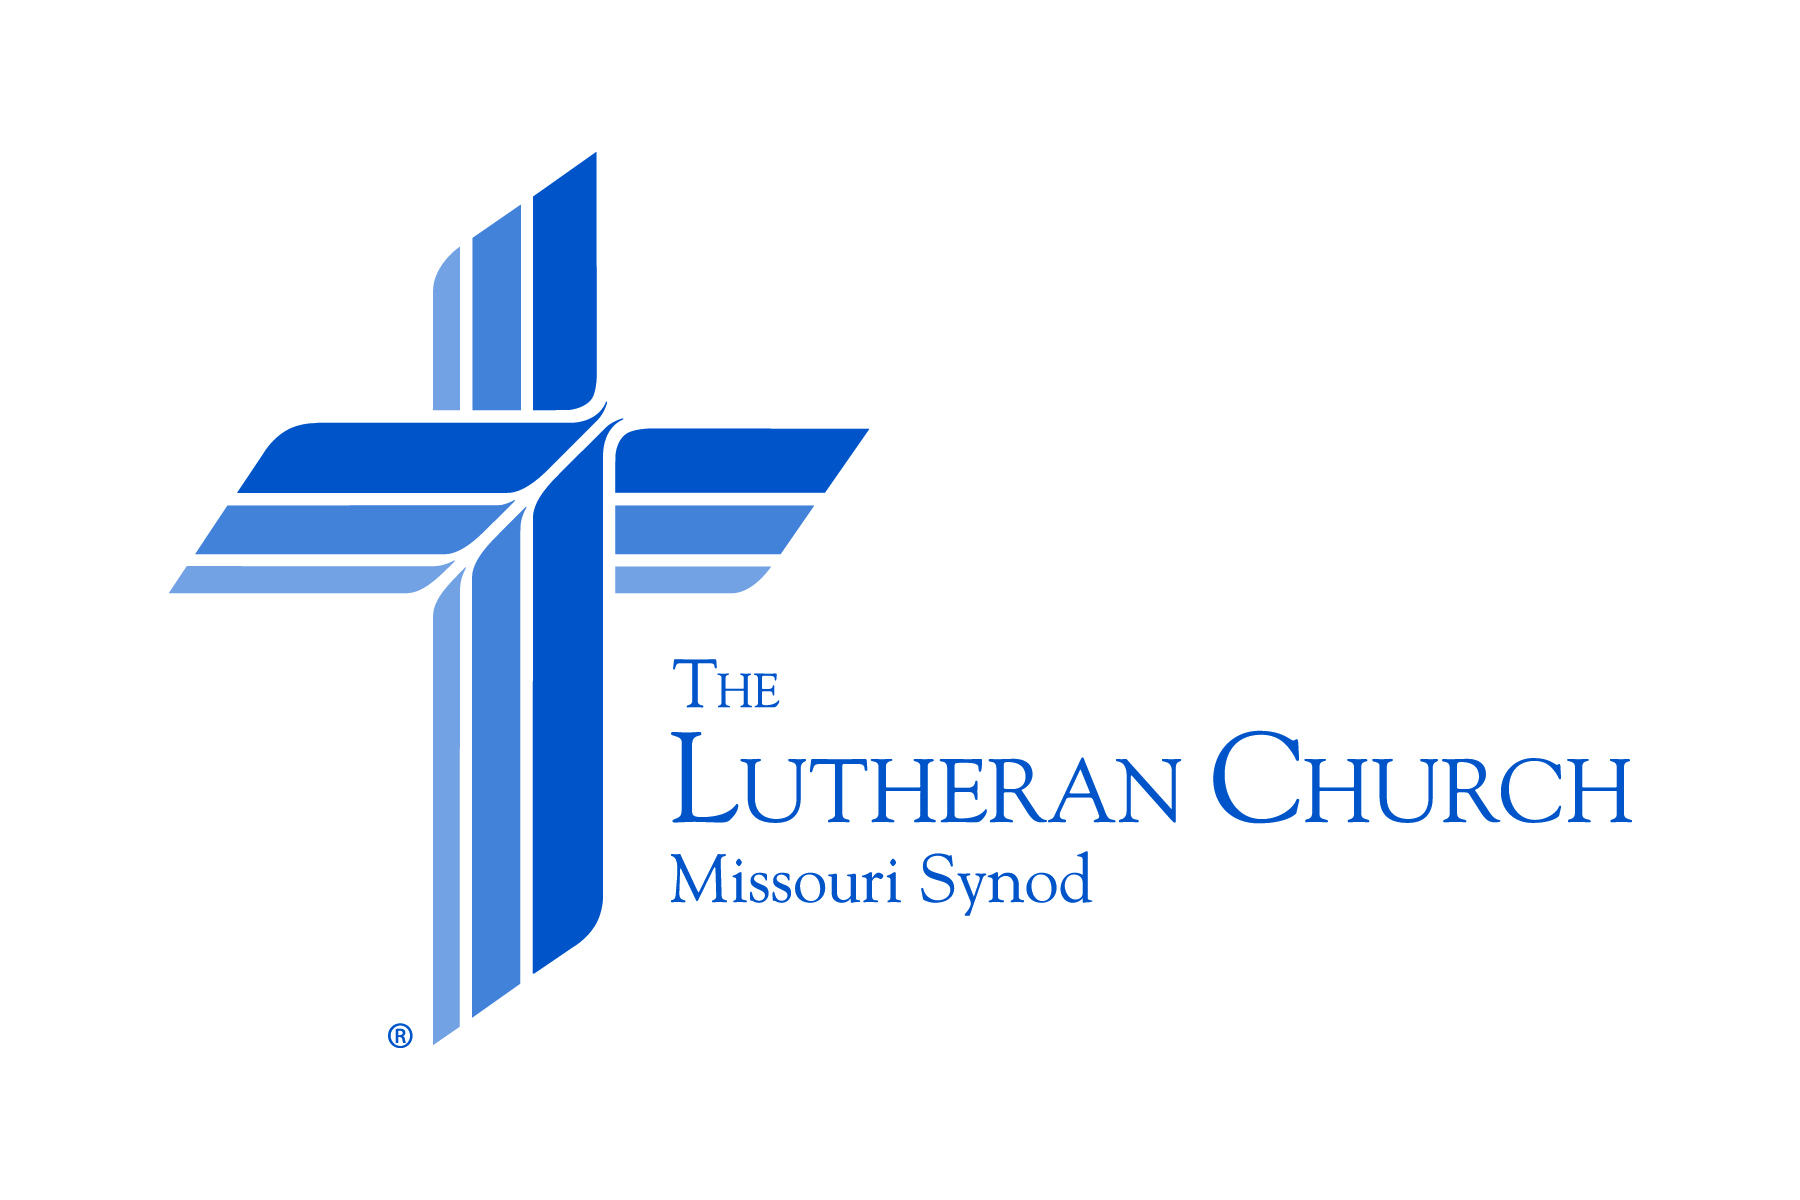 Holy Trinity is a member of the Lutheran Church Missouri Synod